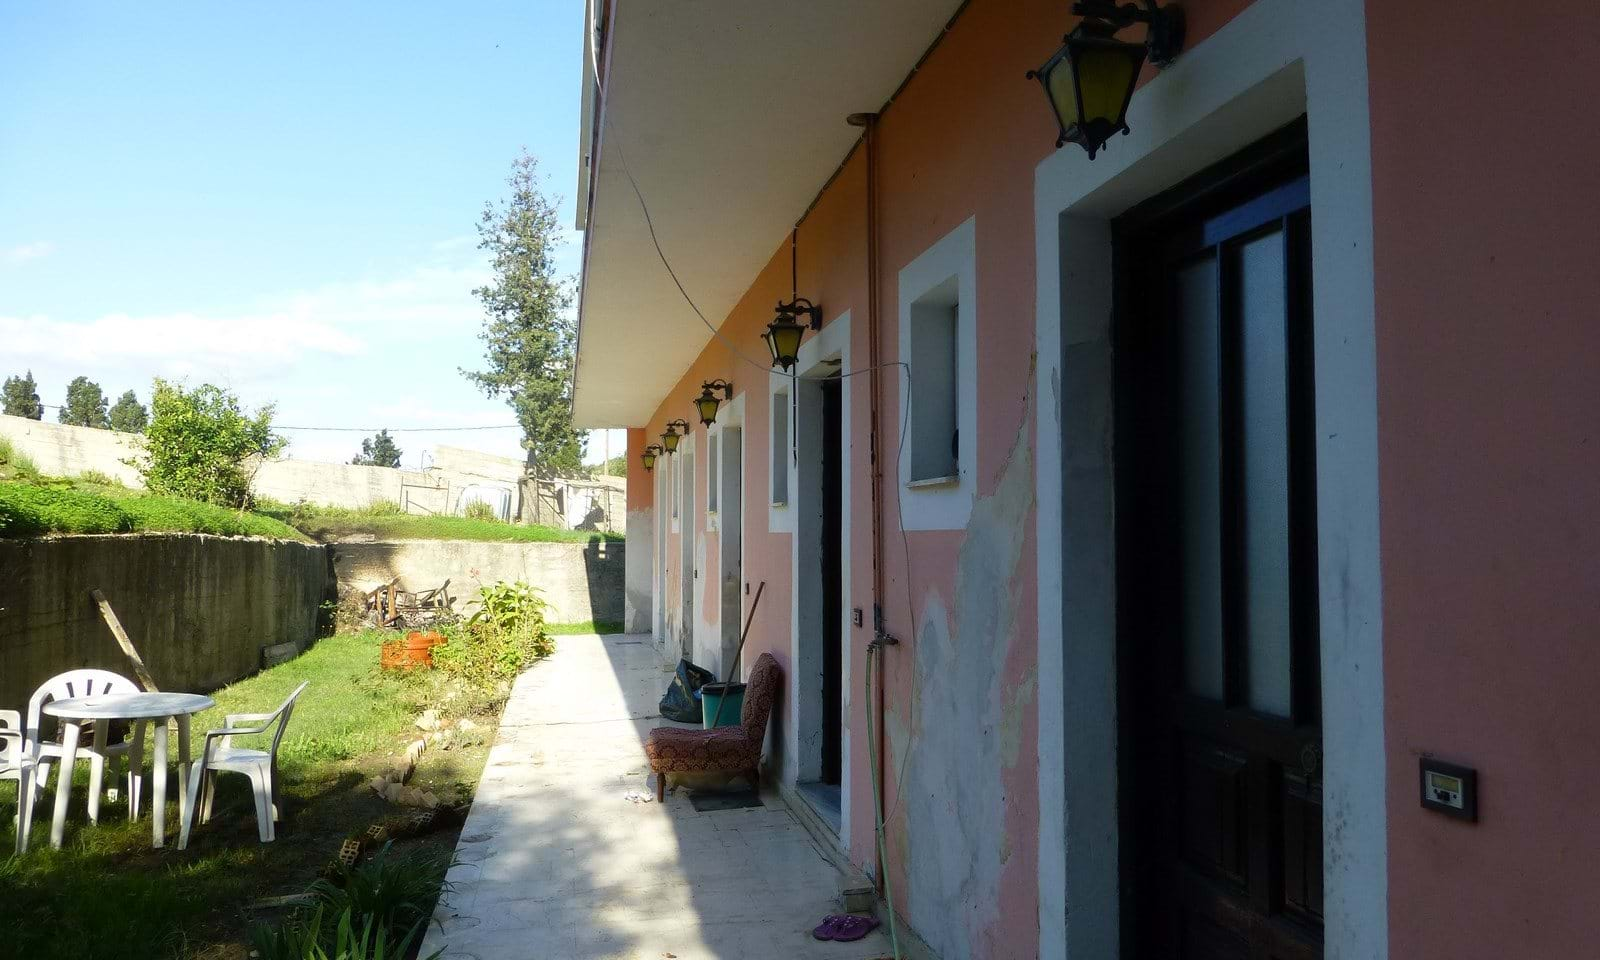 Commercial property for sale in north west Corfu